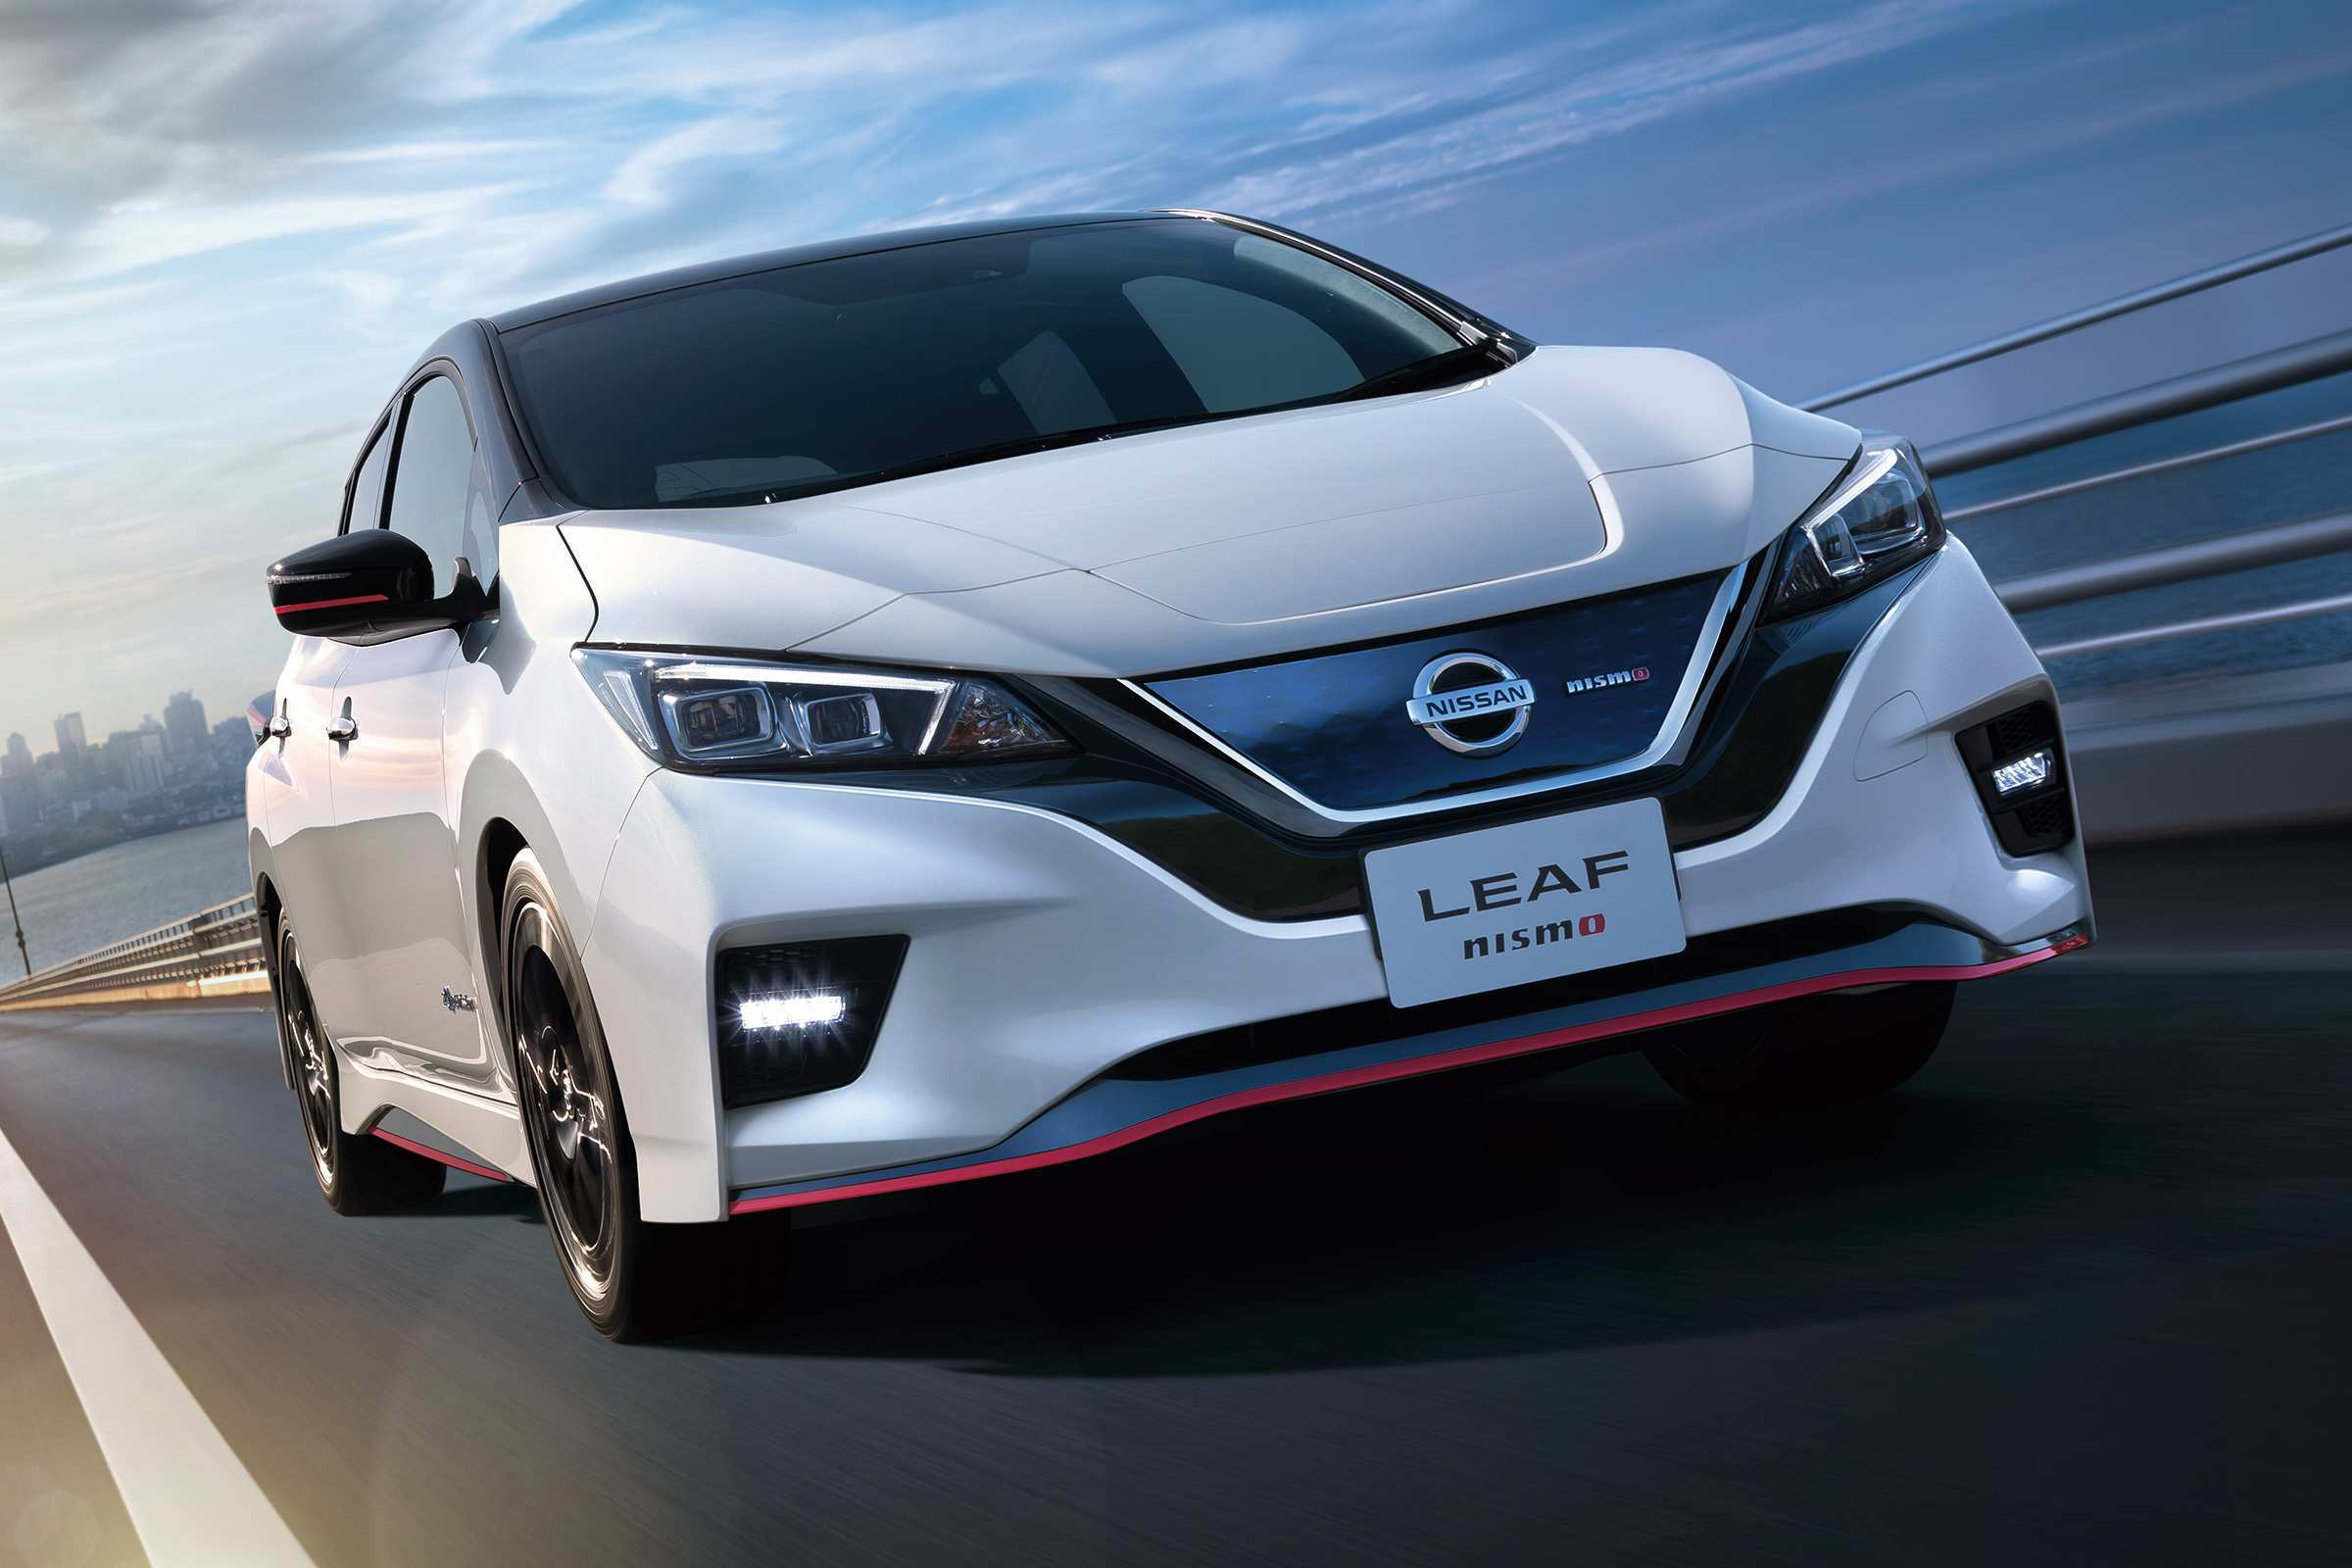 18 New Nissan Leaf 2020 Exterior Date Uk First Drive by Nissan Leaf 2020 Exterior Date Uk